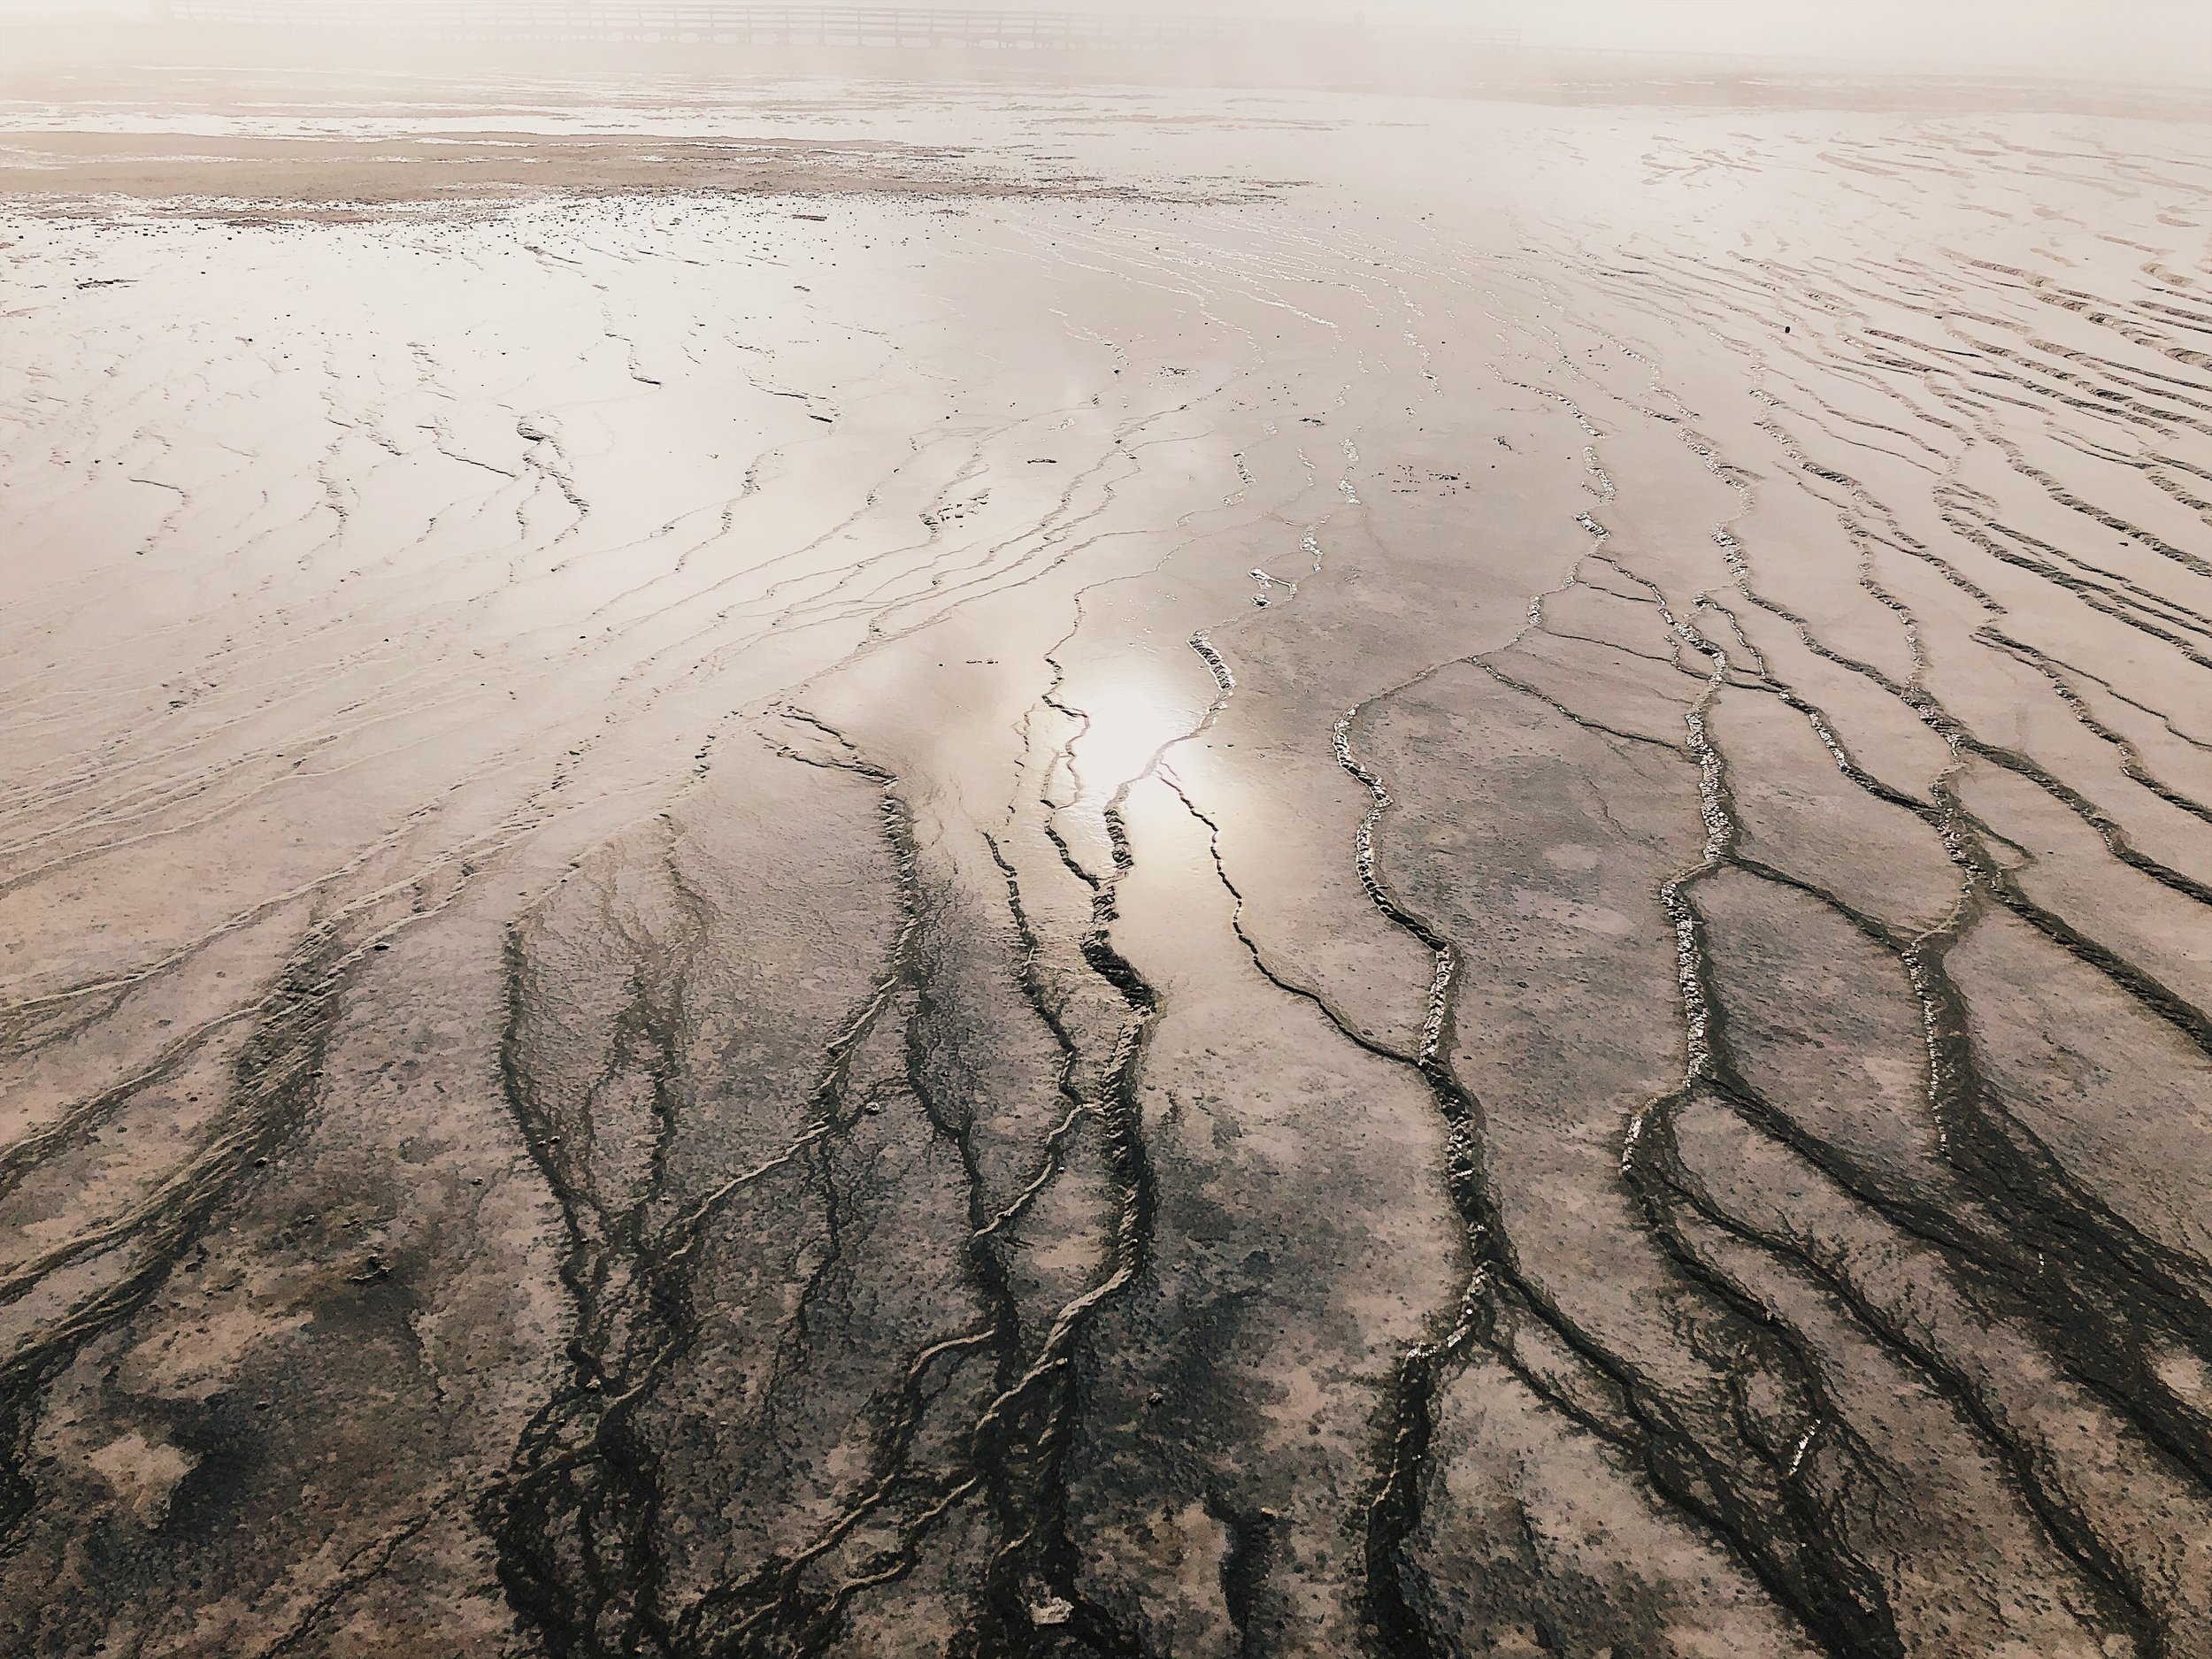 Exploring the veins of The Grand Prismatic Spring